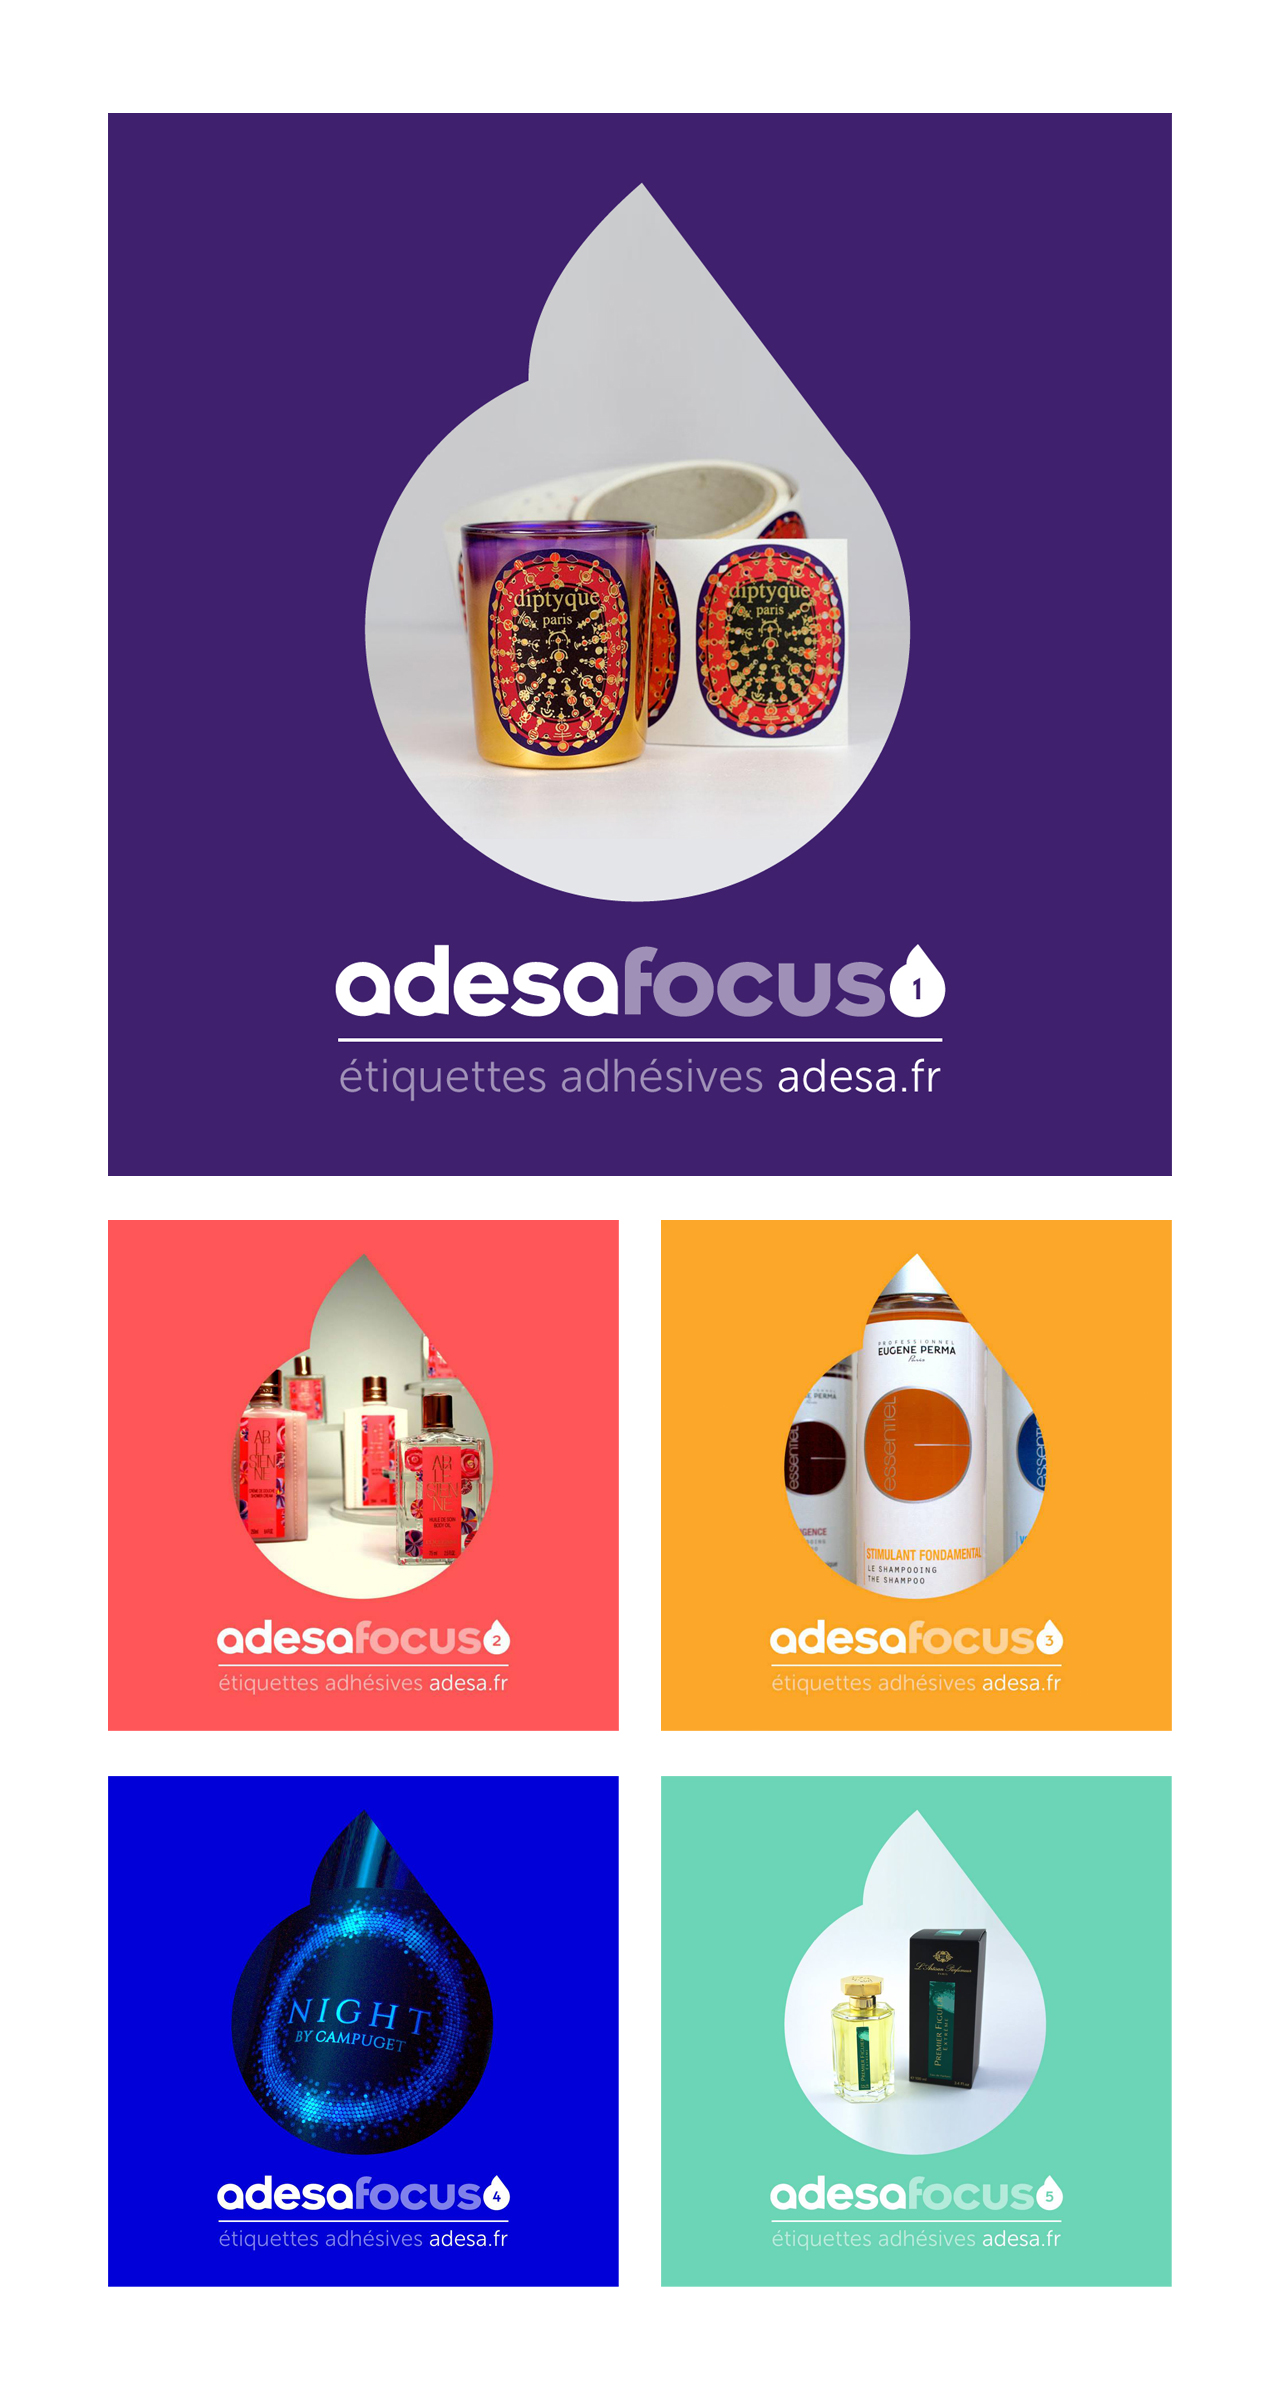 adesa-creation-design-adesafocus-publications-caconcept-alexis-cretin